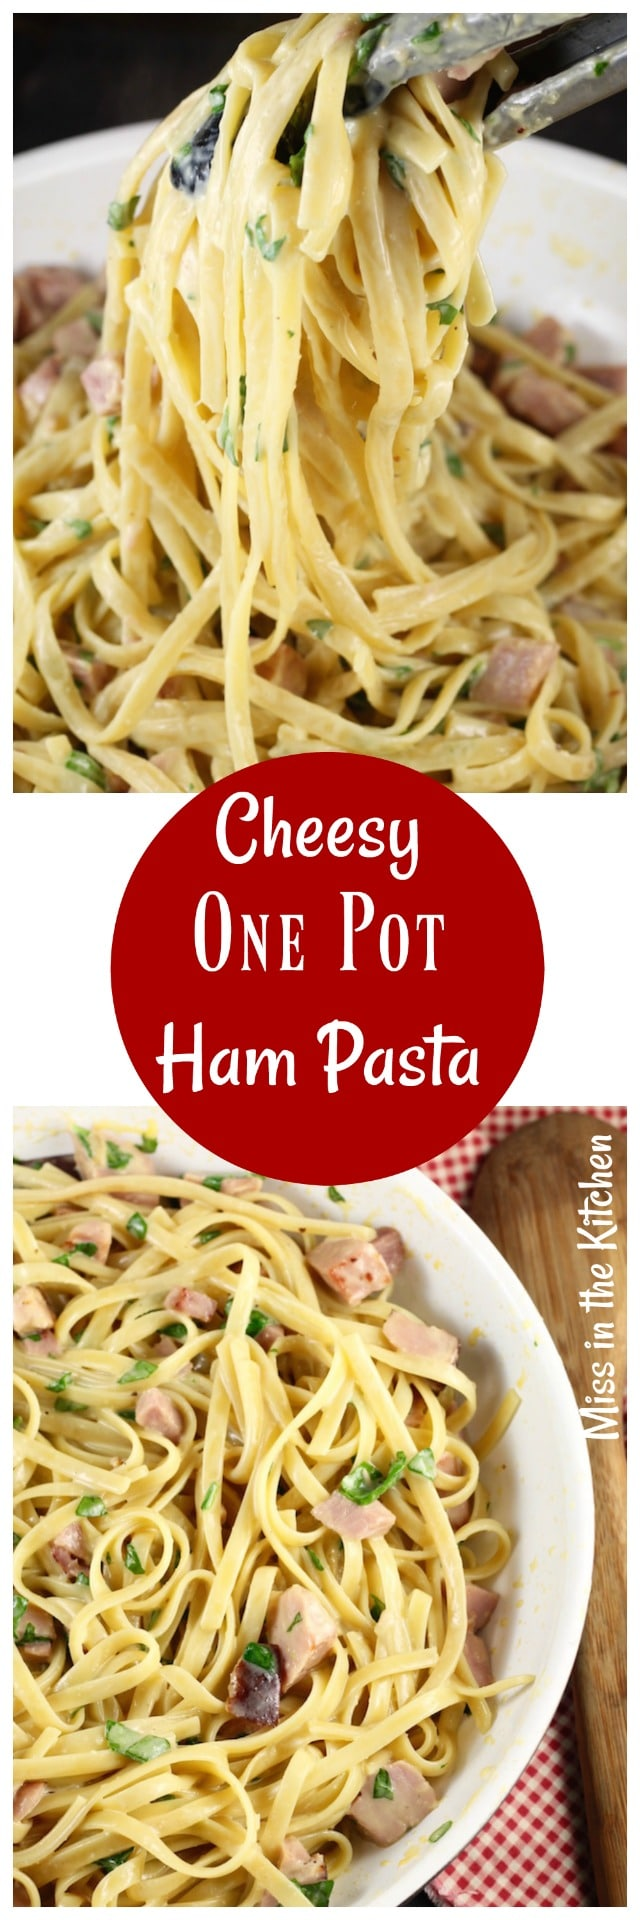 One Pot Cheesy Ham Pasta Dinner